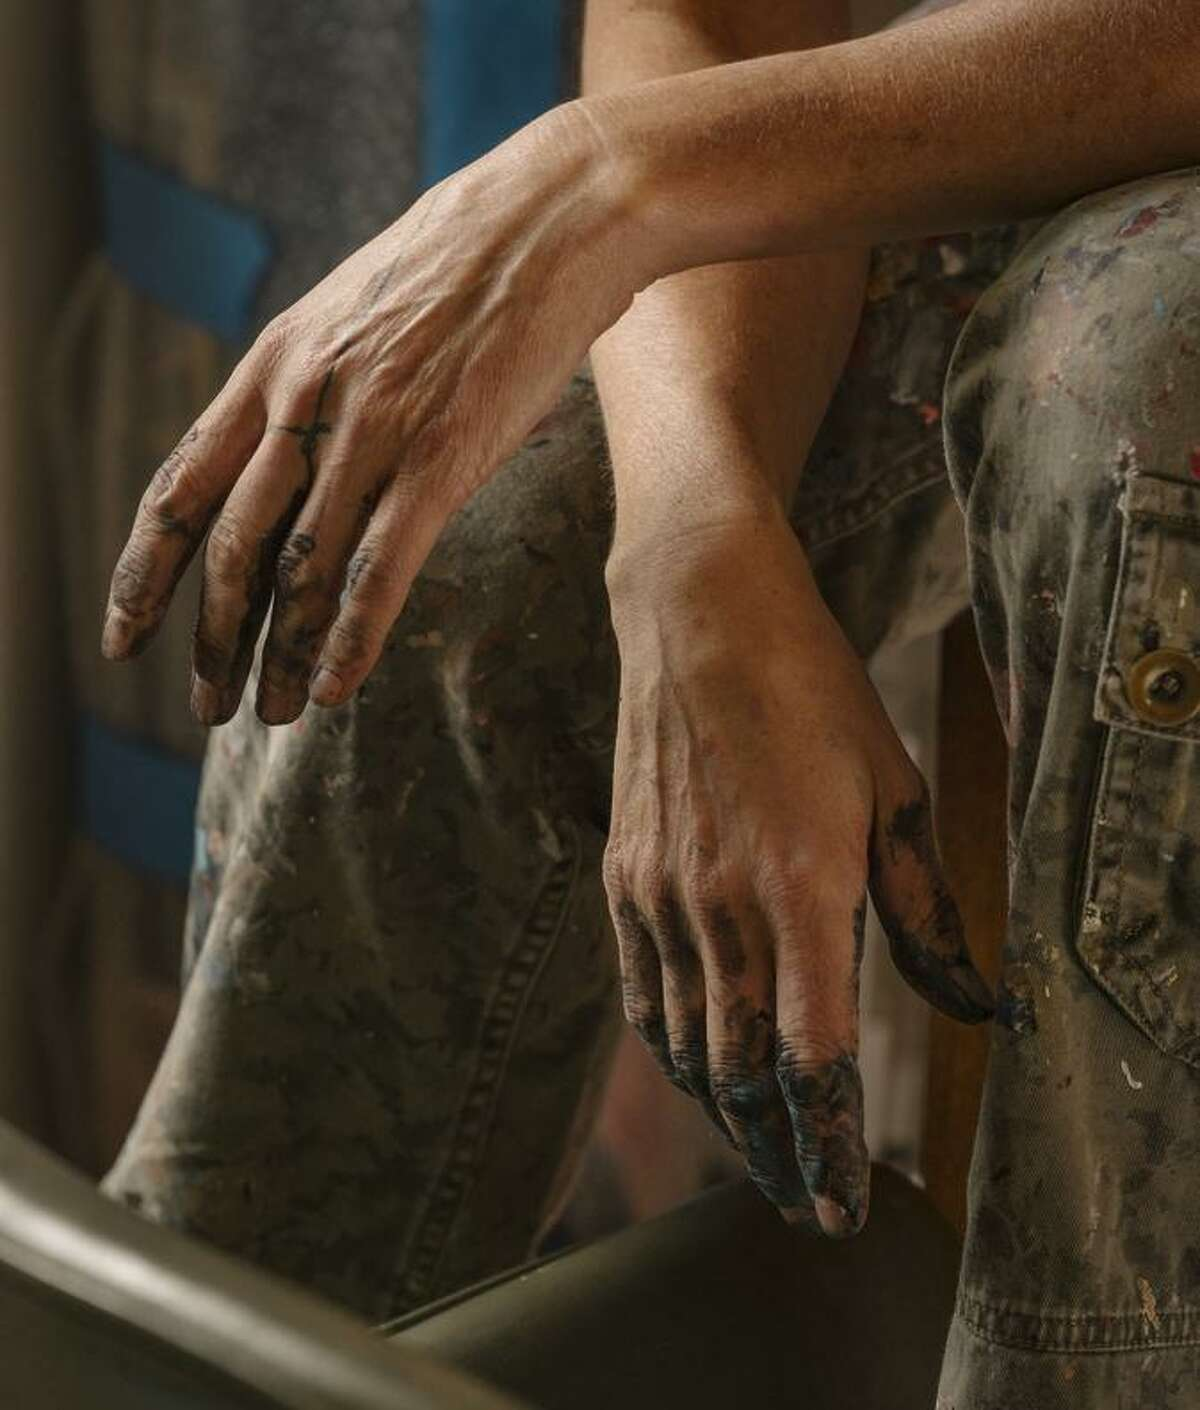 The hands of artist Cate White, an Oakland painter who is one of 25 artists selected.